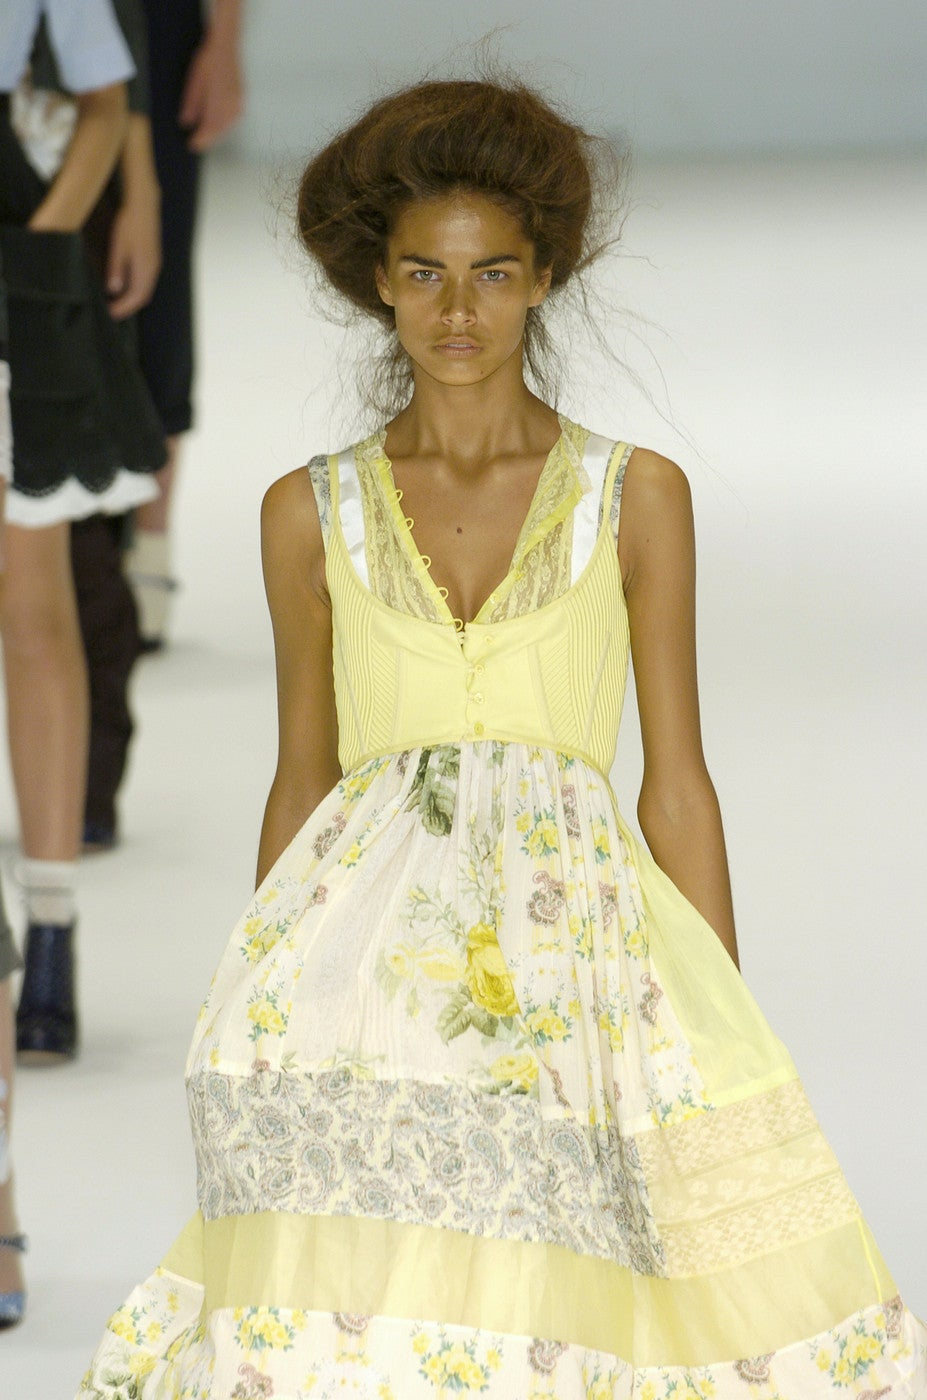 ALEXANDER MCQUEEN 'It Is Only A Game' runway dress - Spring 2005 For Sale 2